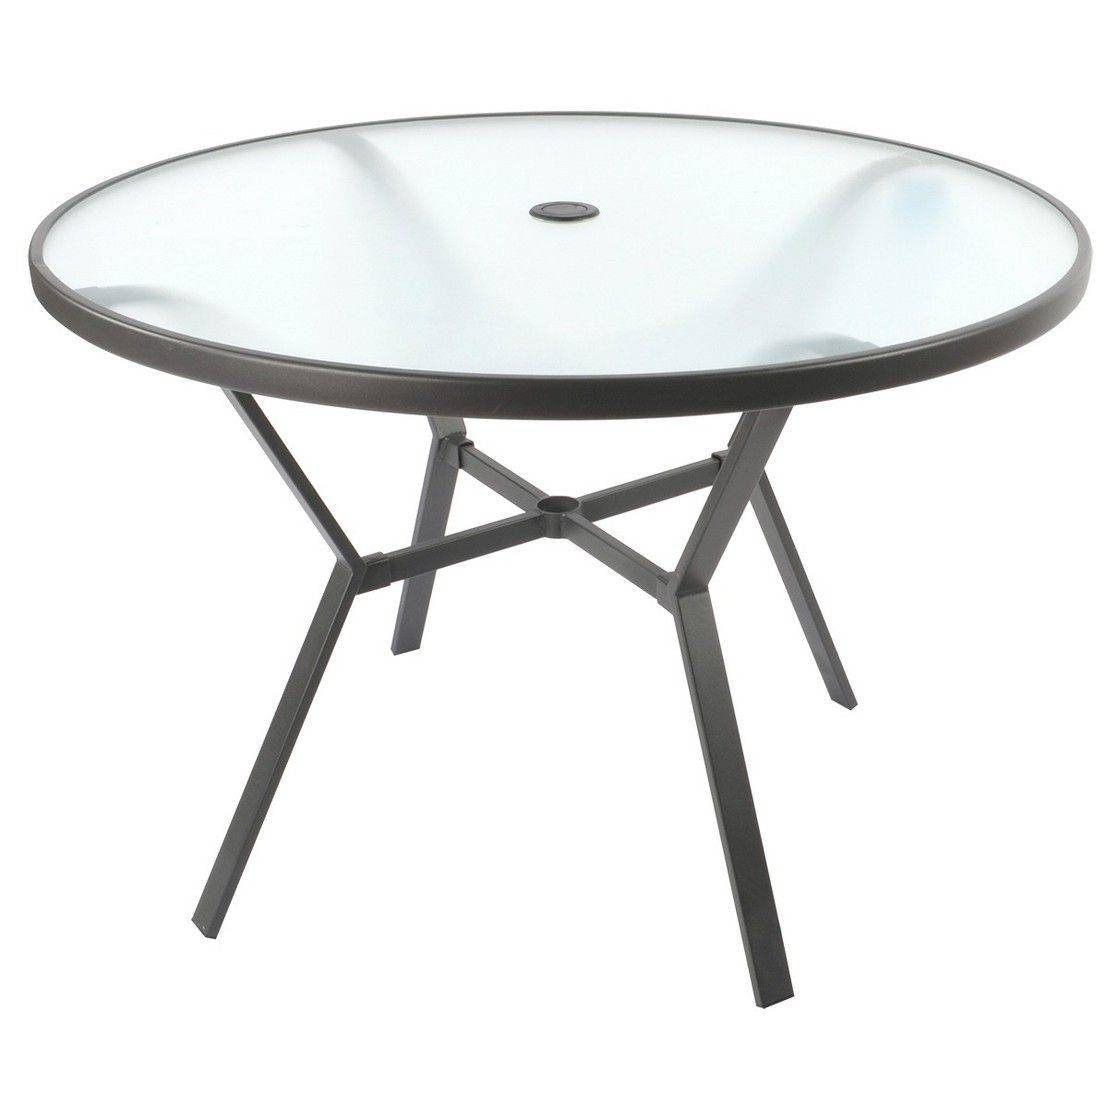 Room Essentials Glass Dining Table